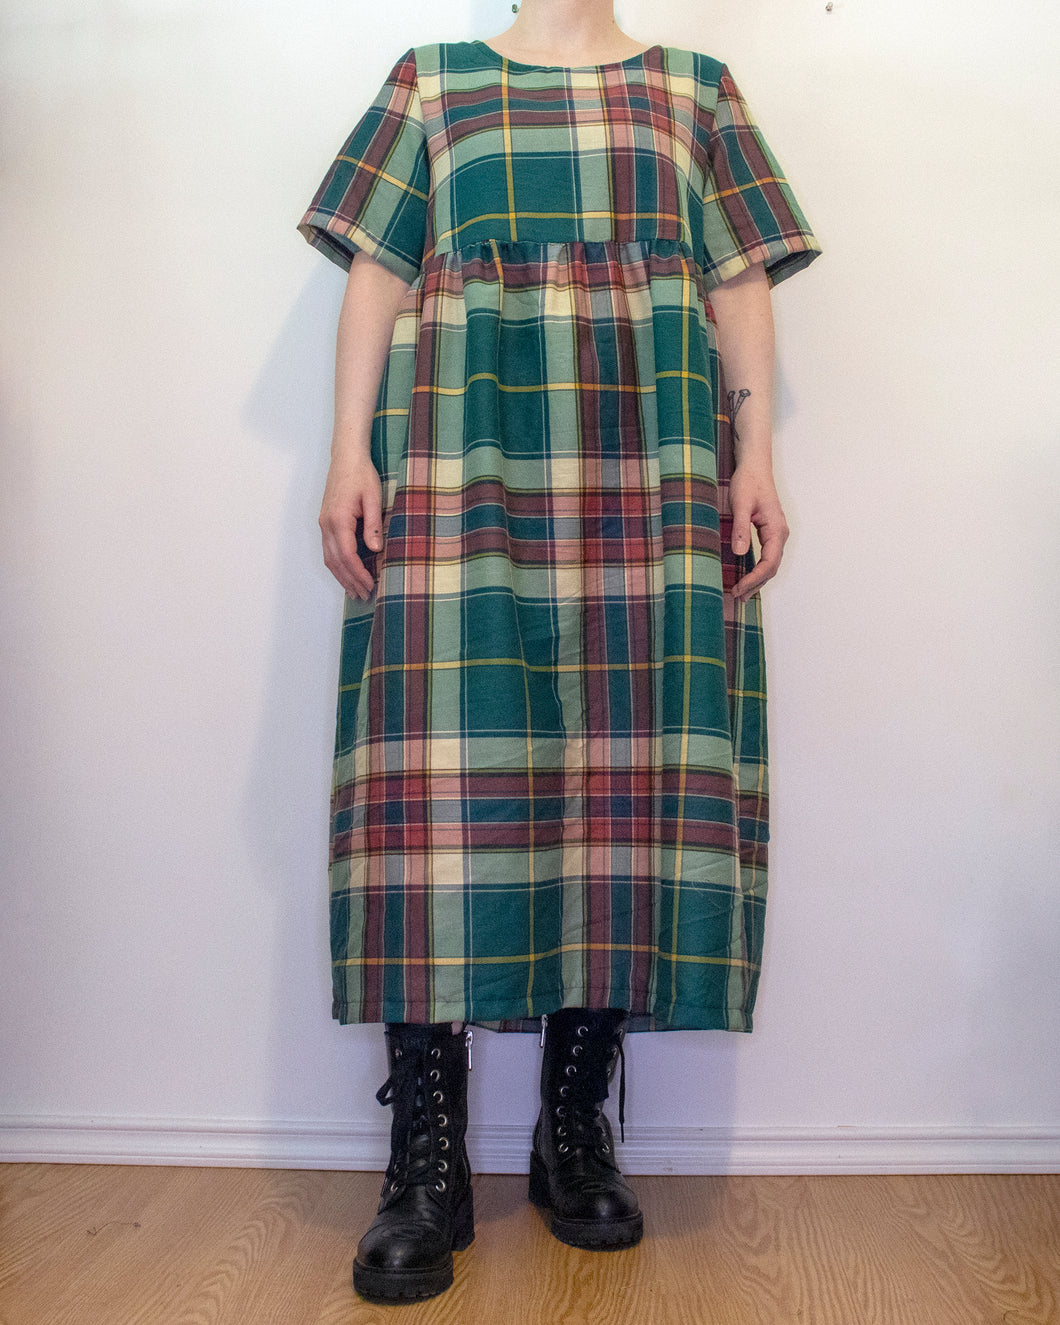 S-L Sage Smock Dress in Green Plaid